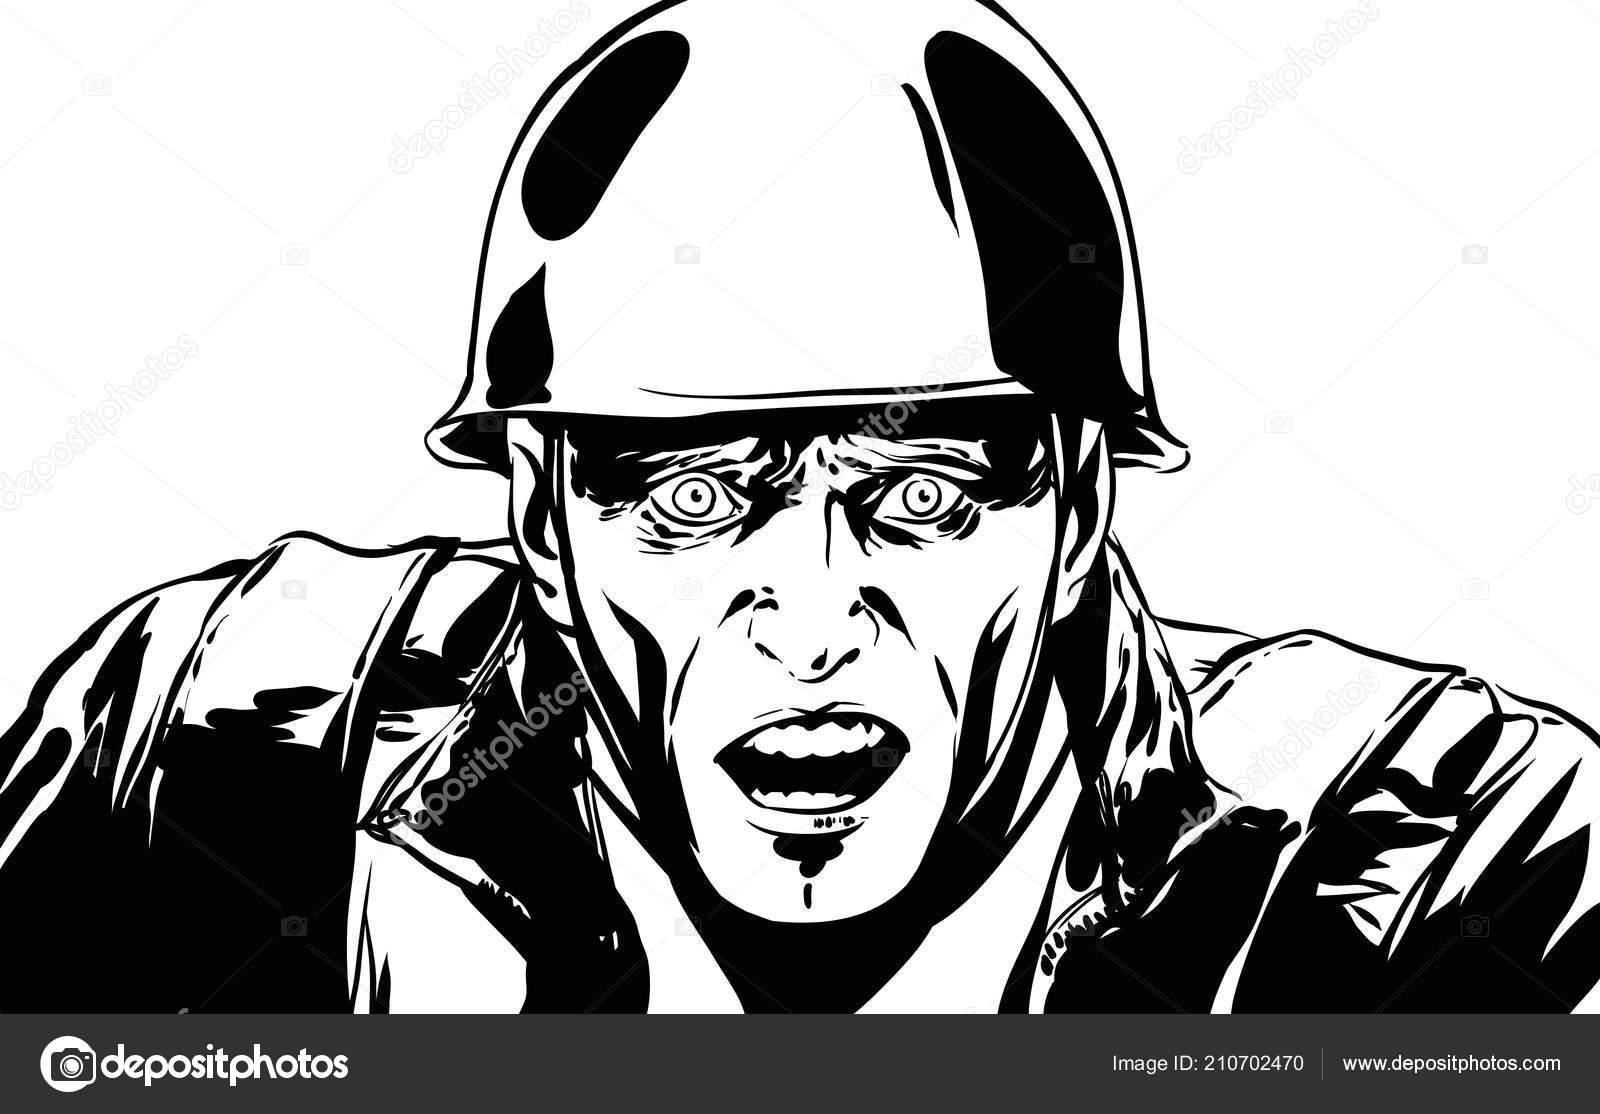 Comics Art Soldier Character Scared Face Expression Black